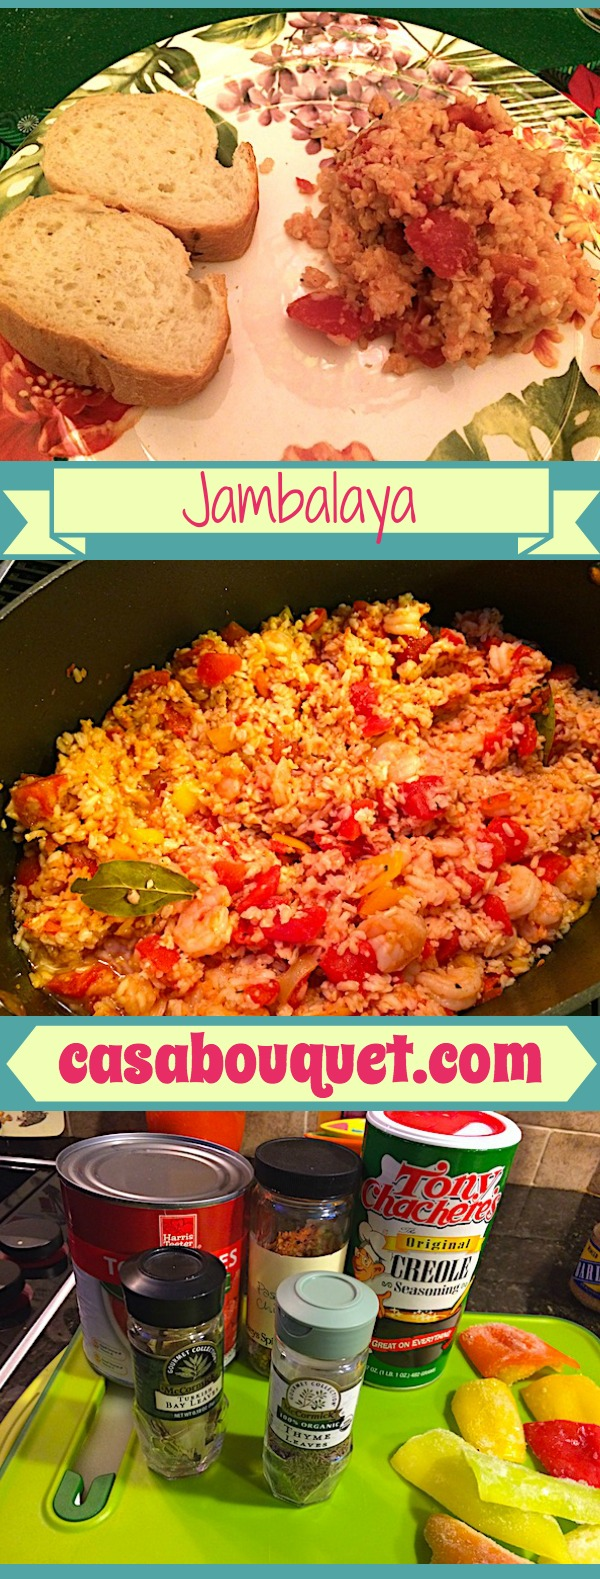 Jambalaya with rice and shrimp is a hearty, one pot Louisiana dish, perfect for Mardi Gras season. Tomatoes, peppers, and Cajun seasonings add flavor.